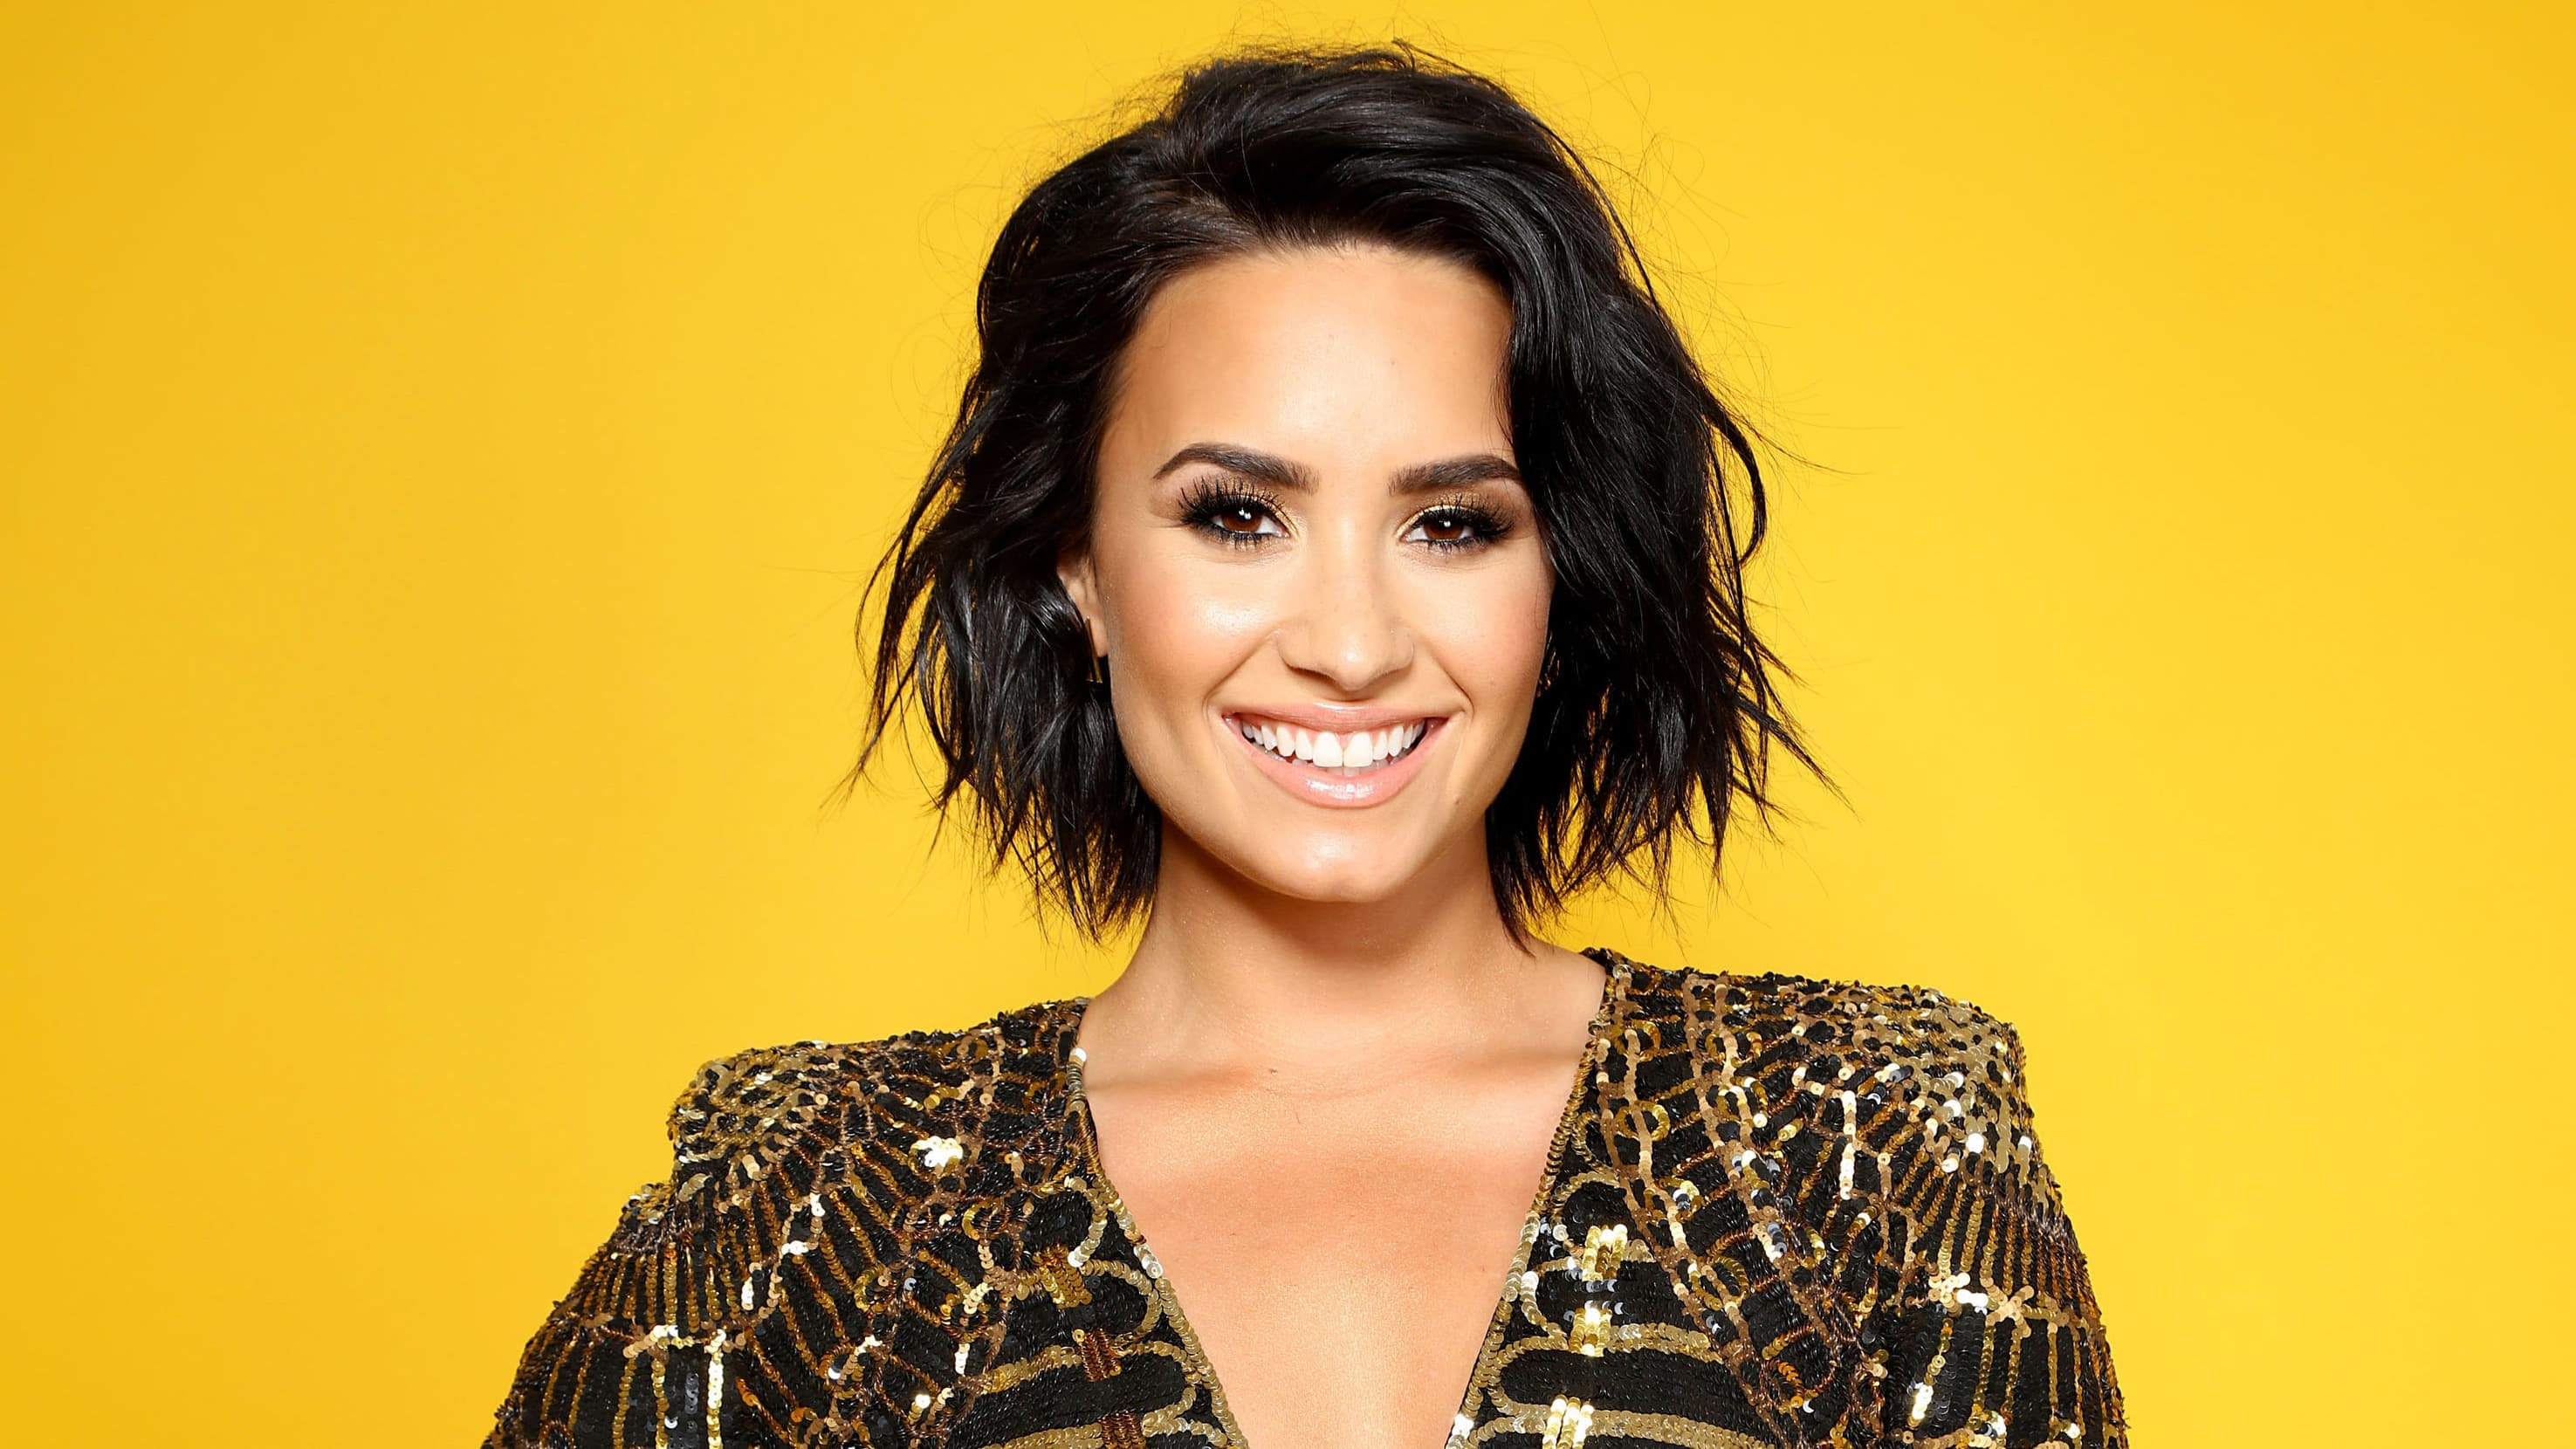 Demi Lovato Wallpapers HD 2951x1660